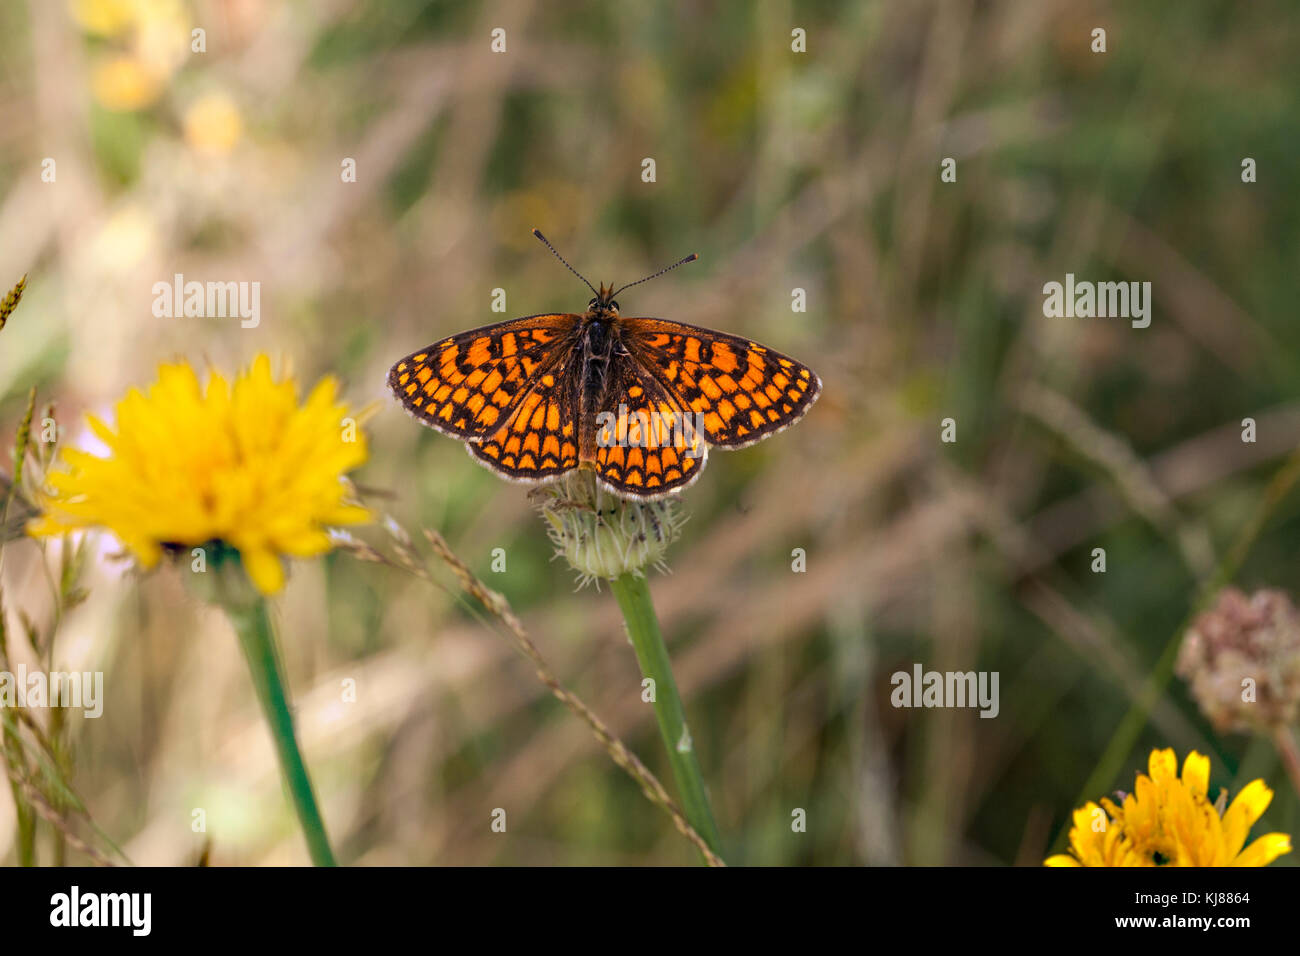 Meadow fritillary butterfly Mellicta parhenoide basking  in the sun on a flower head at Riaza in central Spain - Stock Image